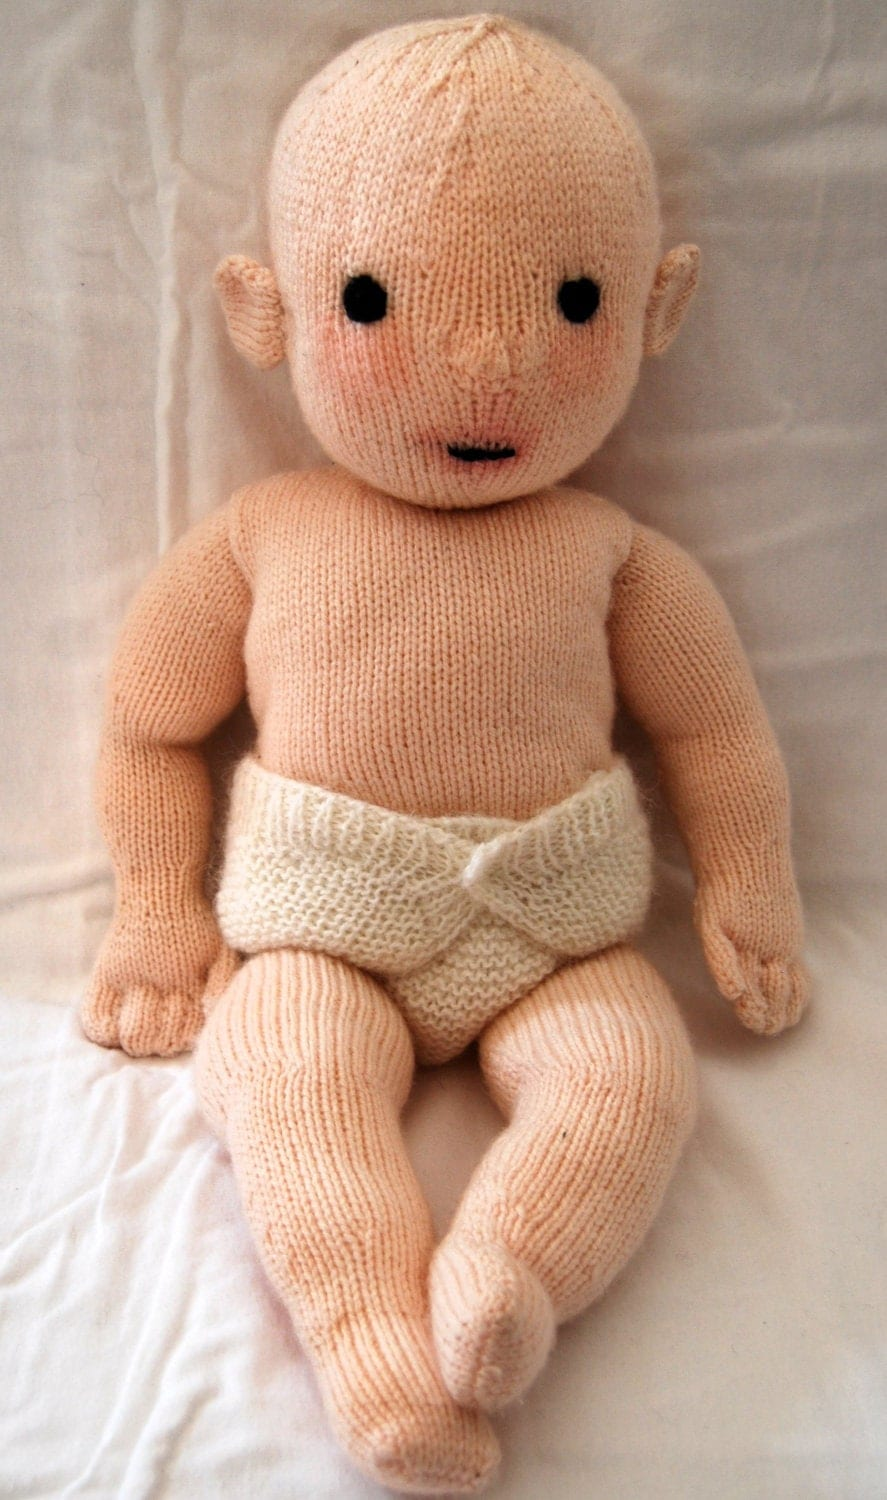 Knitting Pattern To Make A Doll : Knitting pattern PDF for Constance doll.